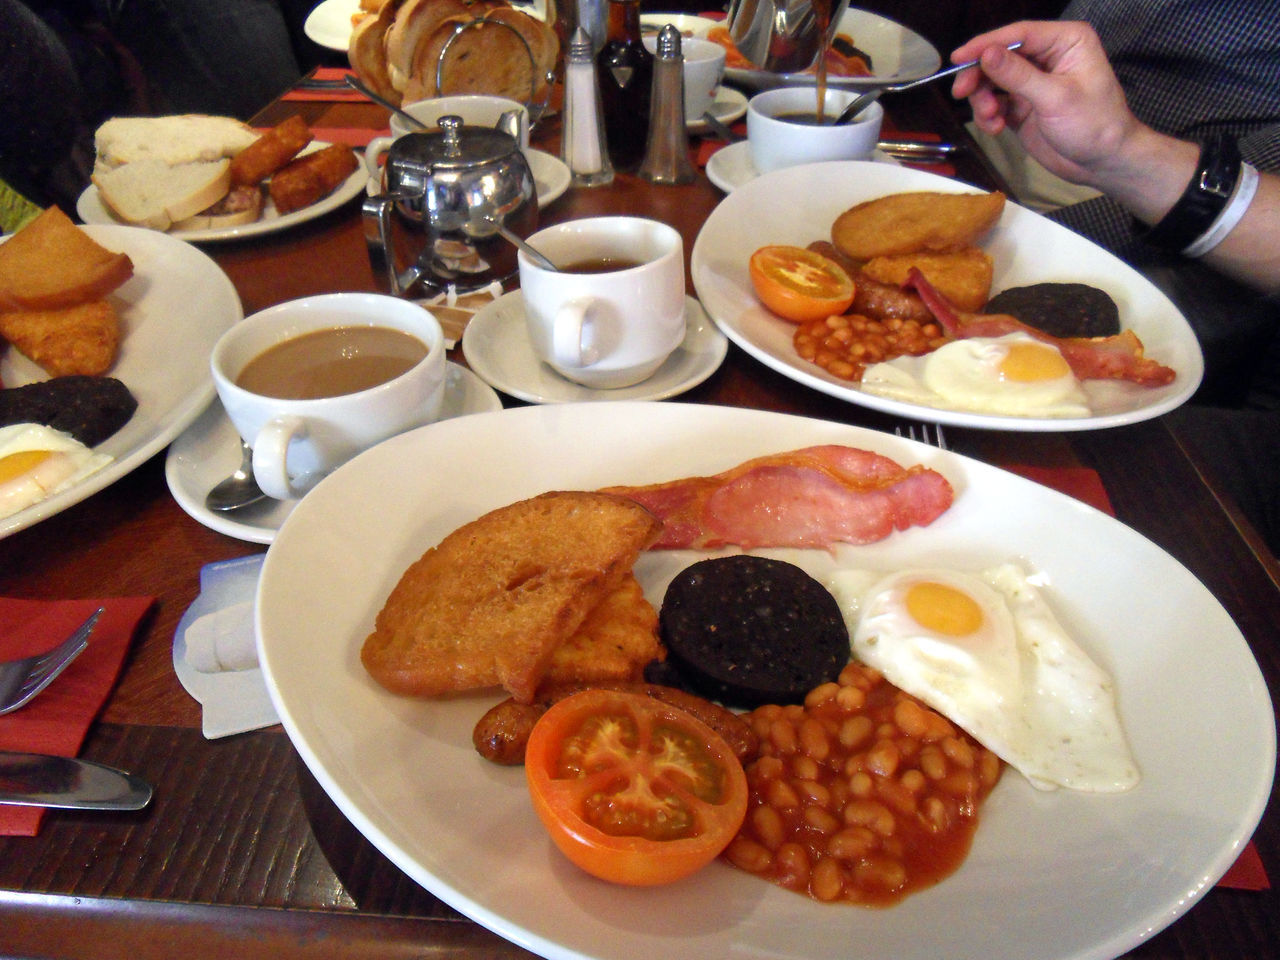 Bacon Beans Breakfast Coffee Eating Egg English Breakfast Food Food And Drink Freshness Hash Brown Human Body Part Human Hand Indoors  Plate Ready-to-eat Sausage Table Tea Toast Toasted Bread Tomato